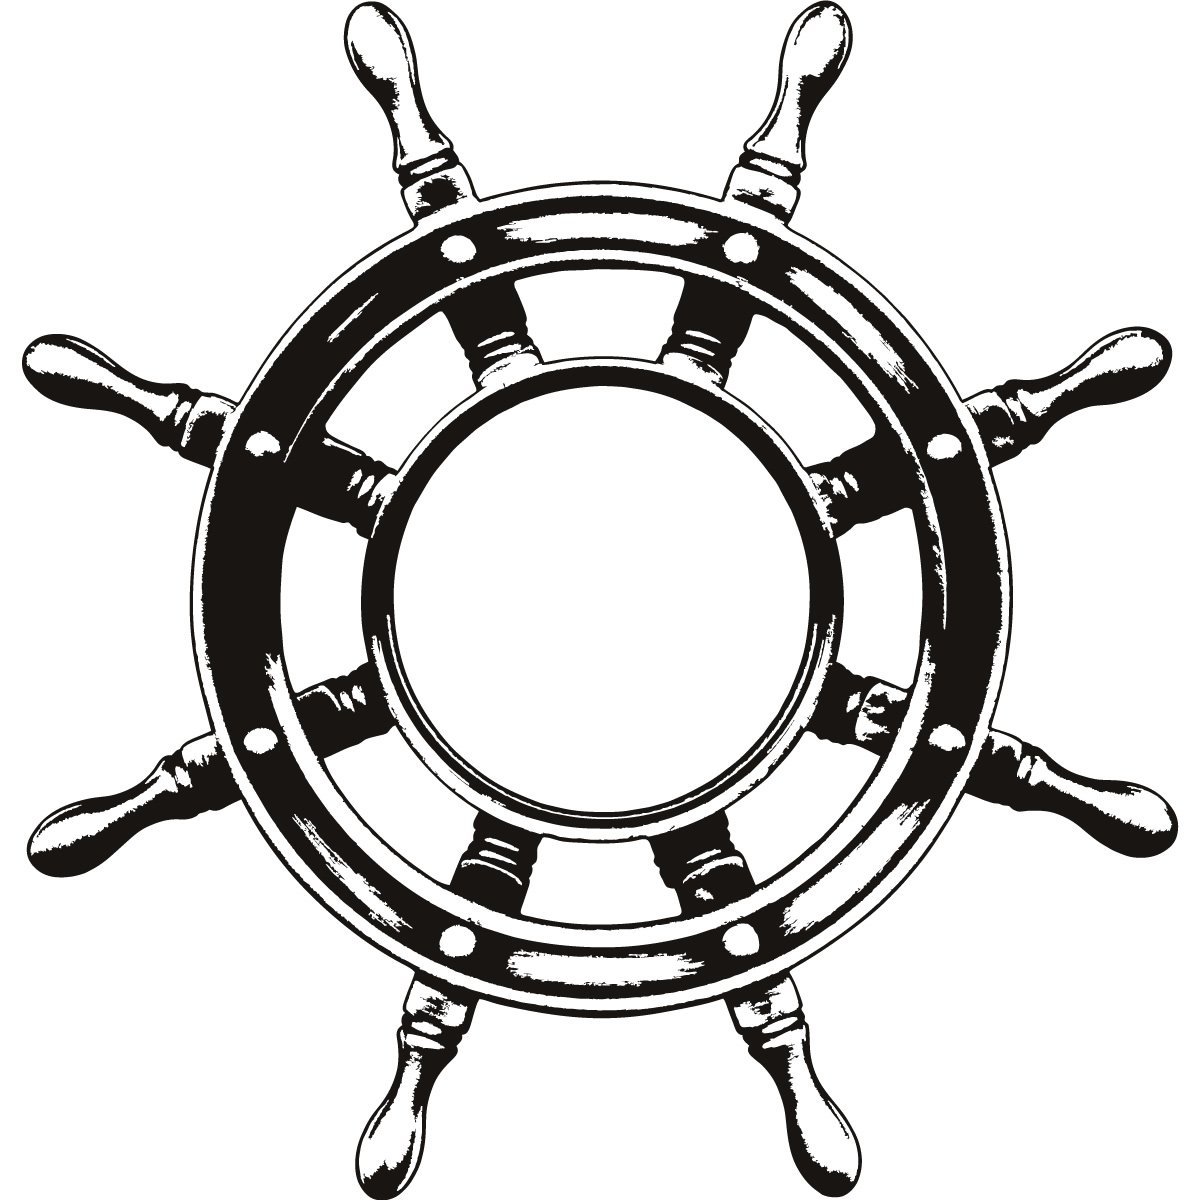 ship-wheel-wall-art-sticker-55.jpg